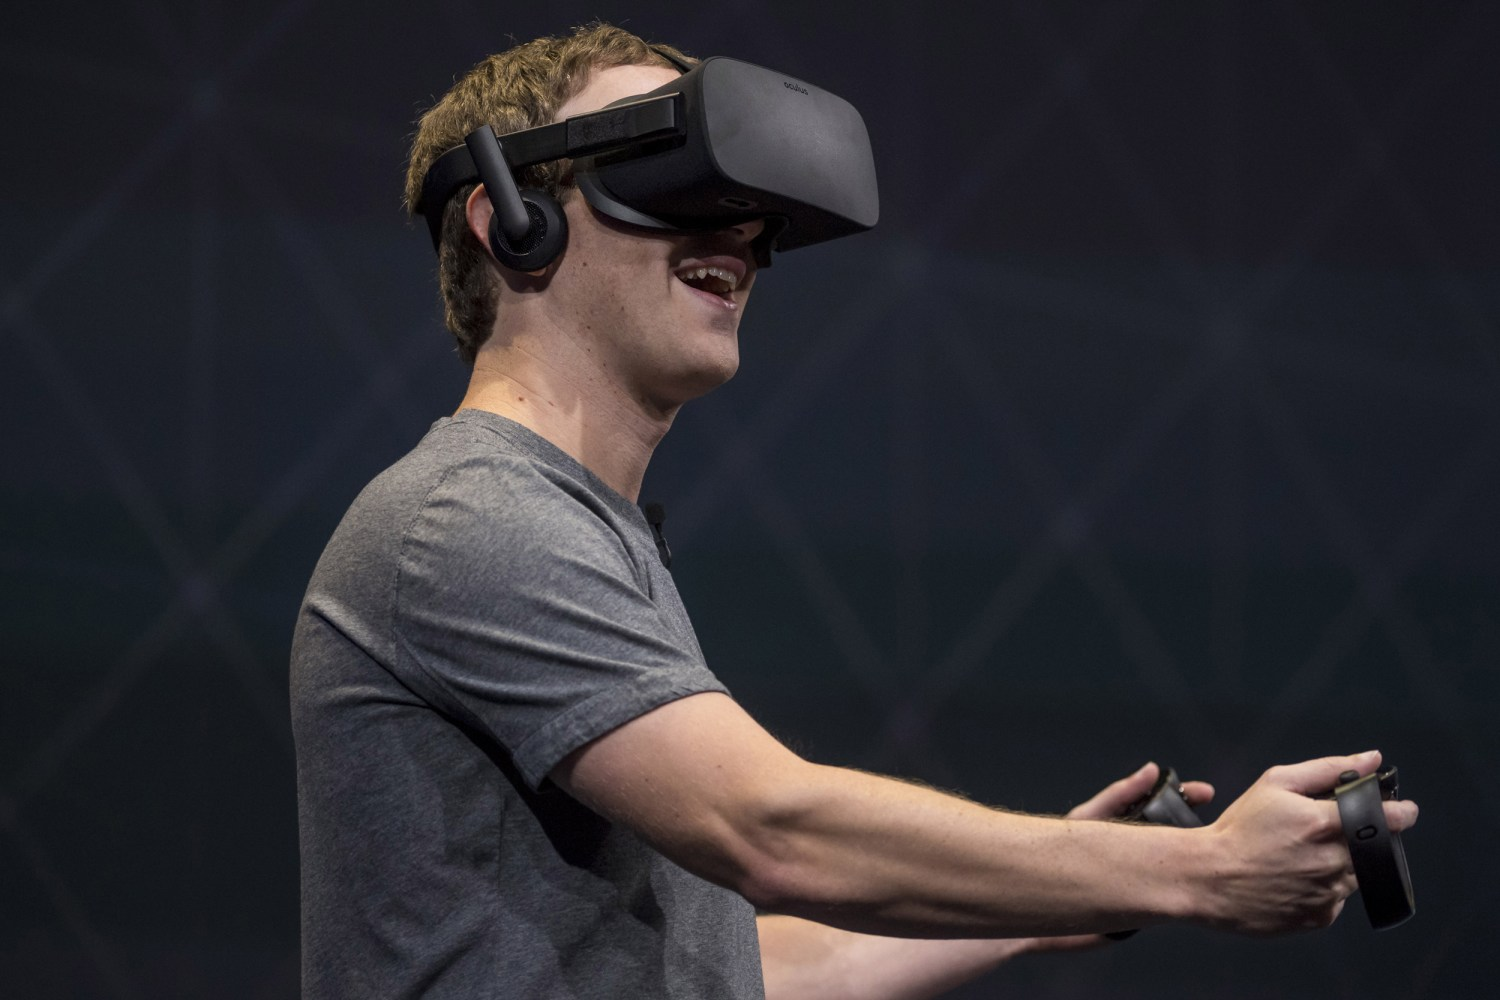 Mark Zuckerberg Teases Glove-Based Advanced Hand Tracking Research From Oculus